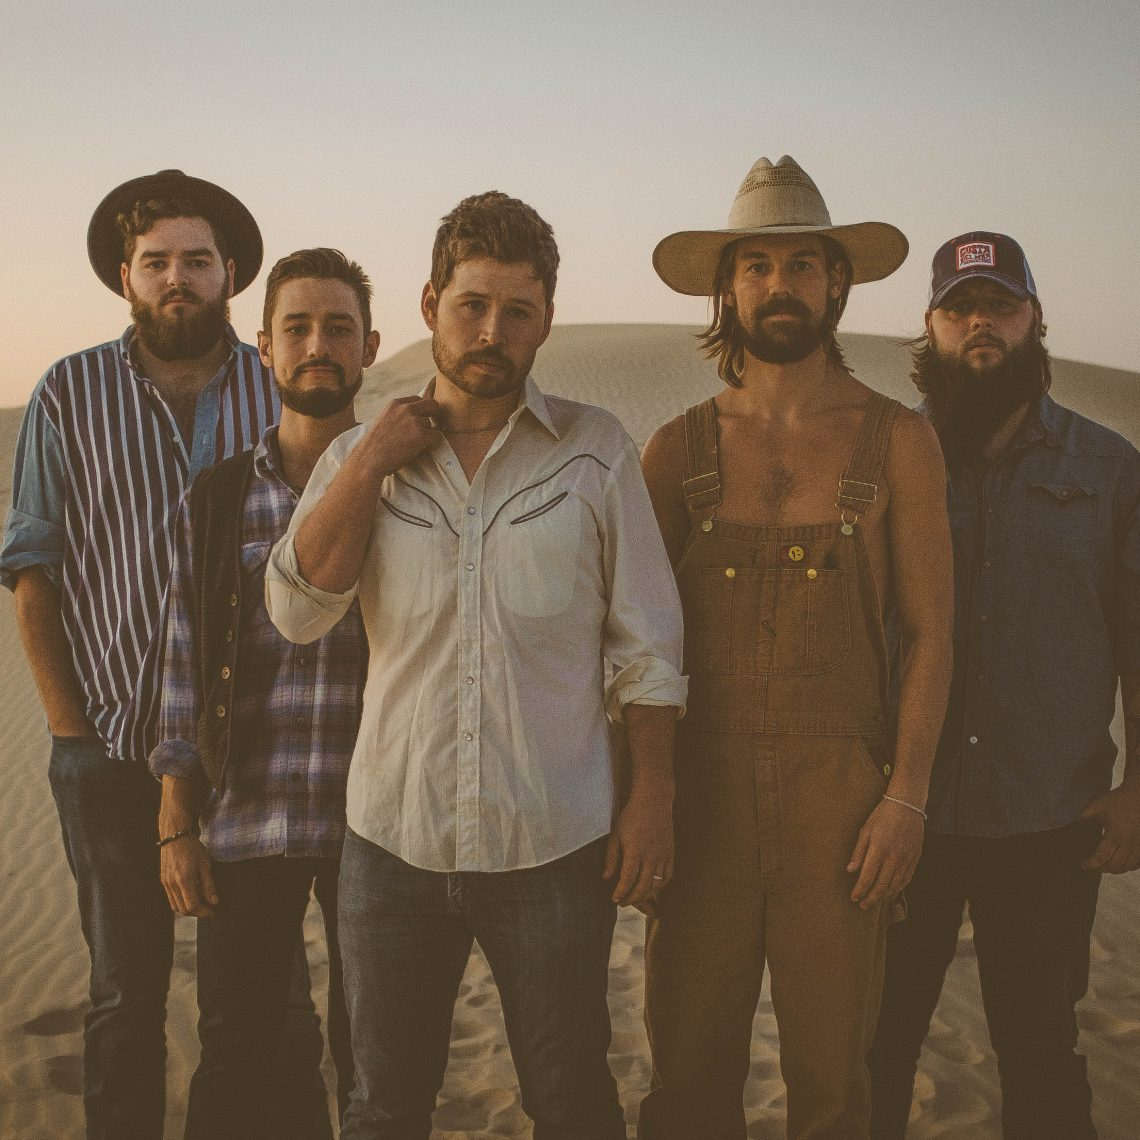 The Saints are coming: (from left) Tim Allen, Zach Stover, Shane Smith, Bennett Brown, and Chase Satterwhite. (Courtesy Shane Smith & the Saints)